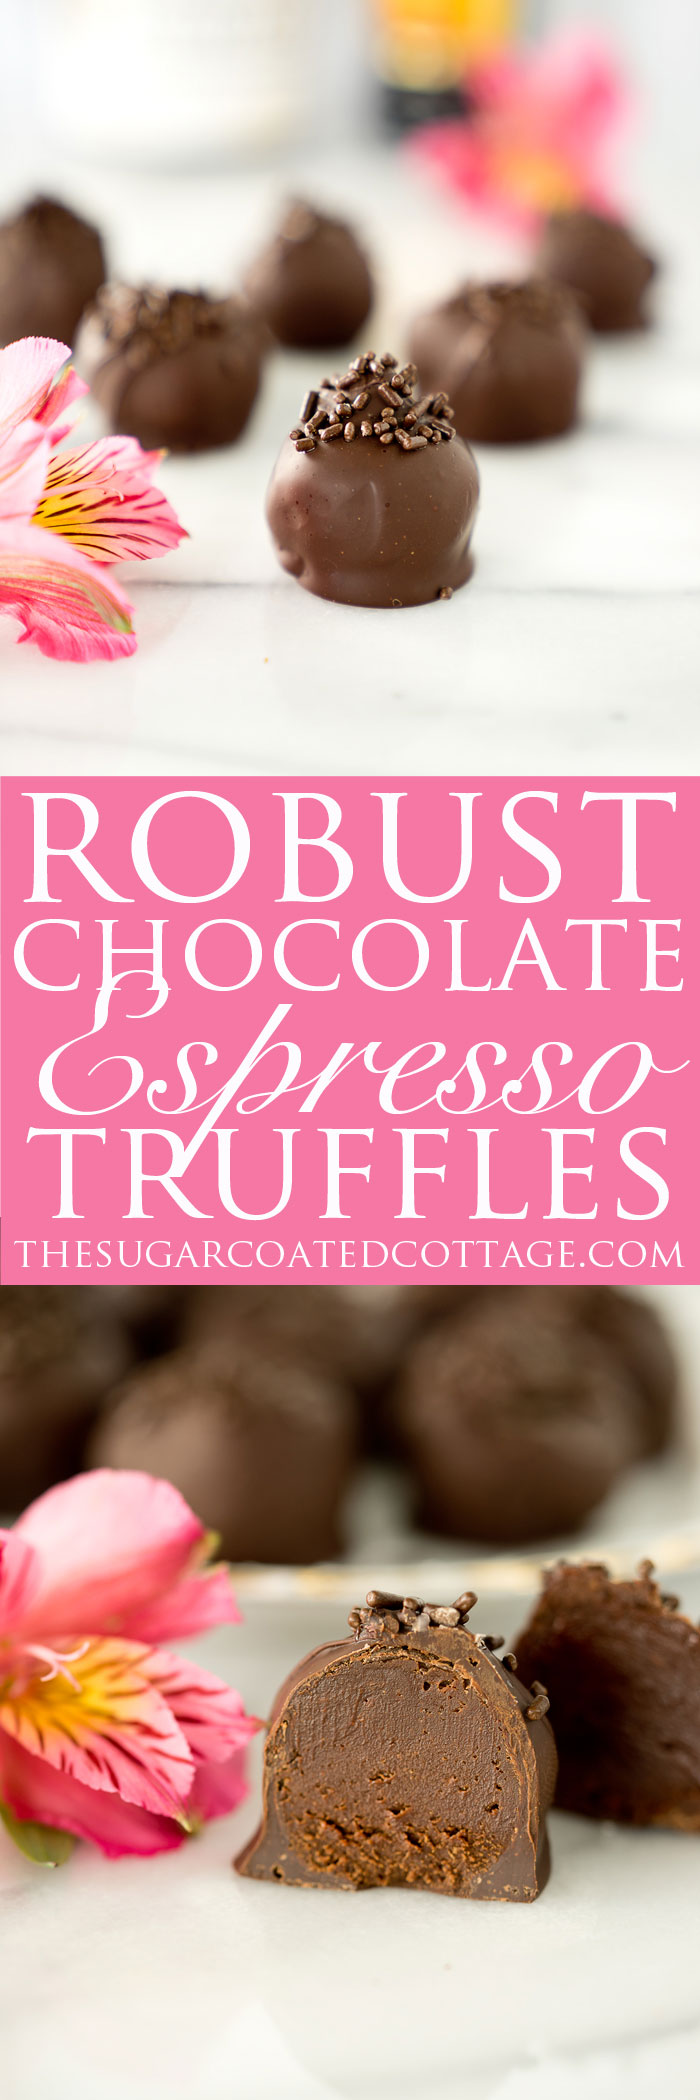 Robust Chocolate Espresso Truffles. Chocolate that snaps on the outside, smooth, creamy espresso center. You need this chocolate recipe! | thesugarcoatedcottage.com